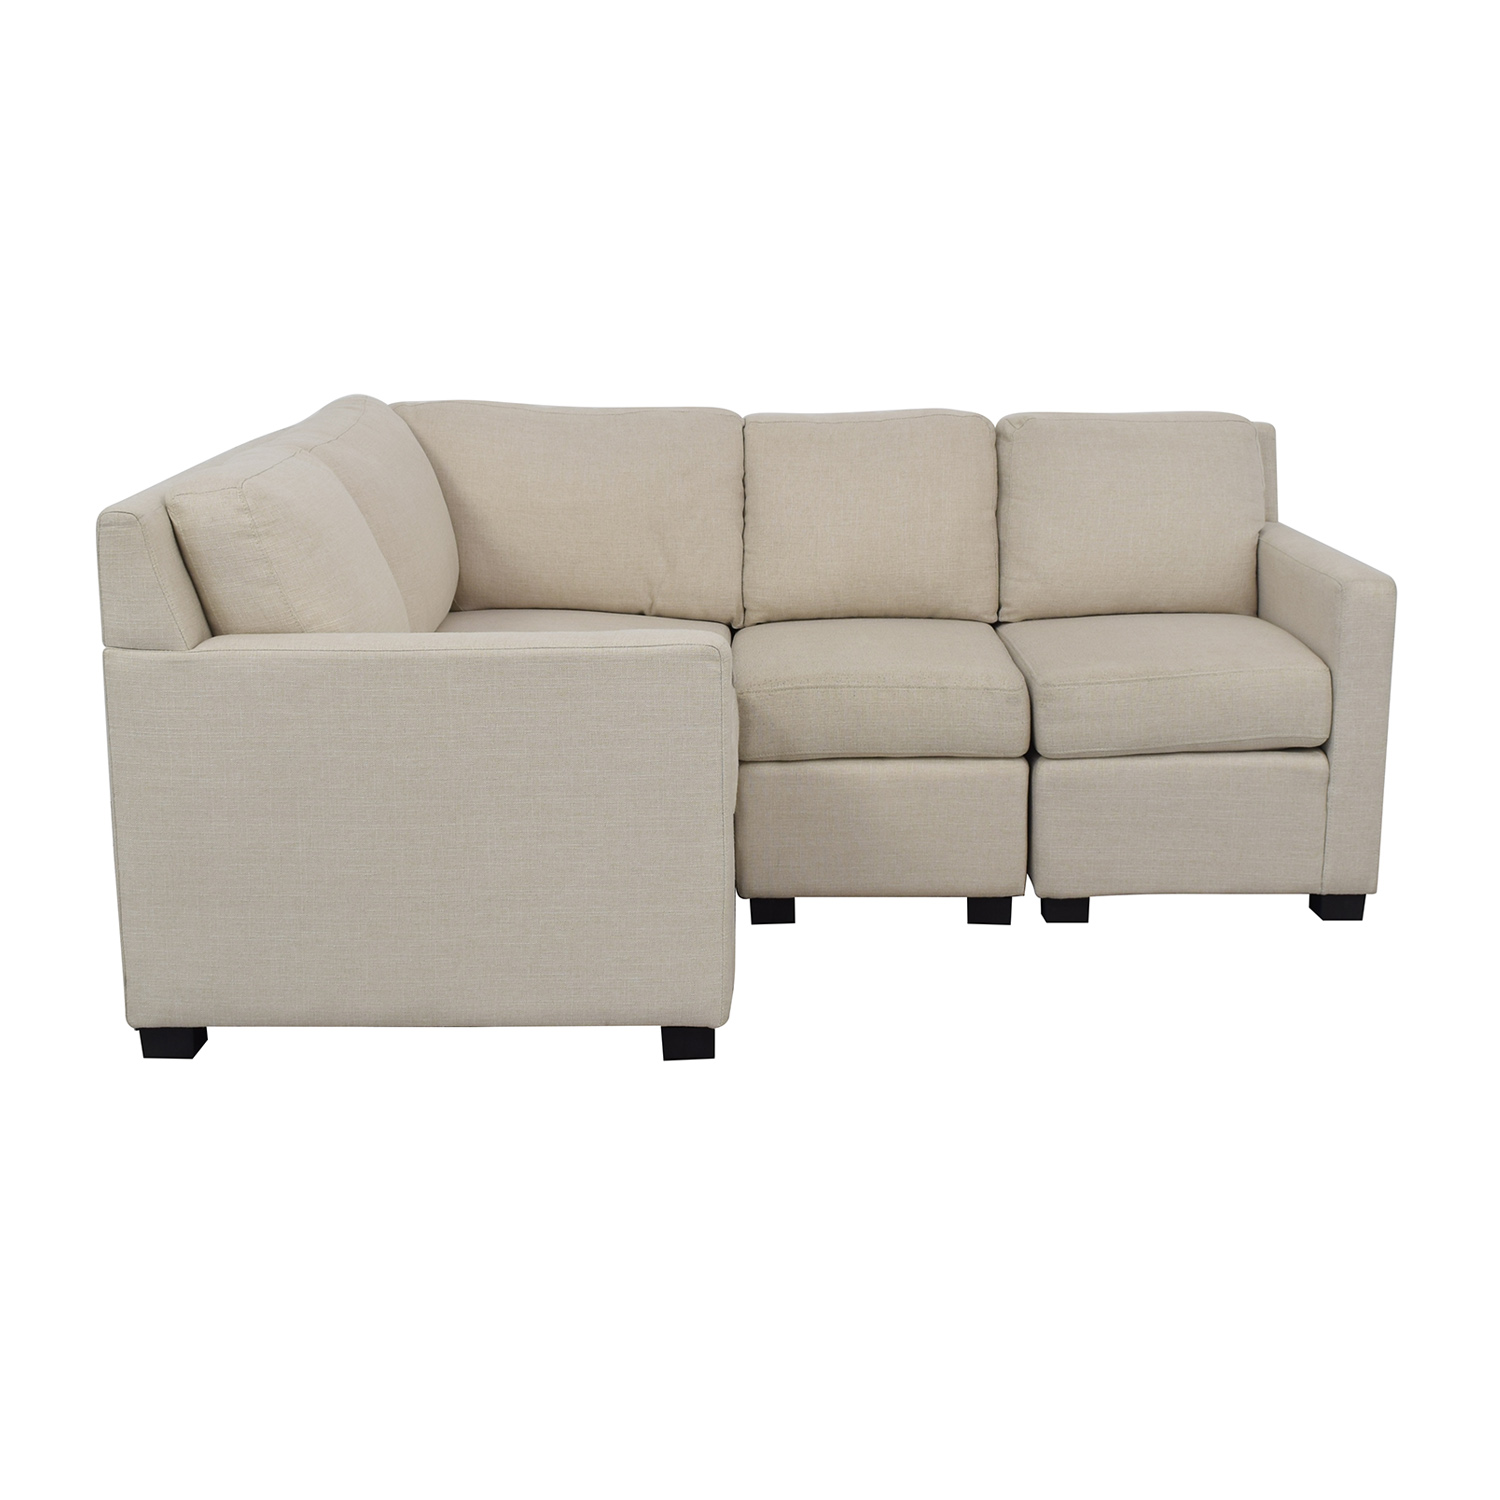 Pottery Barn Pottery Barn Studio Harrison Sectional Sofa dimensions